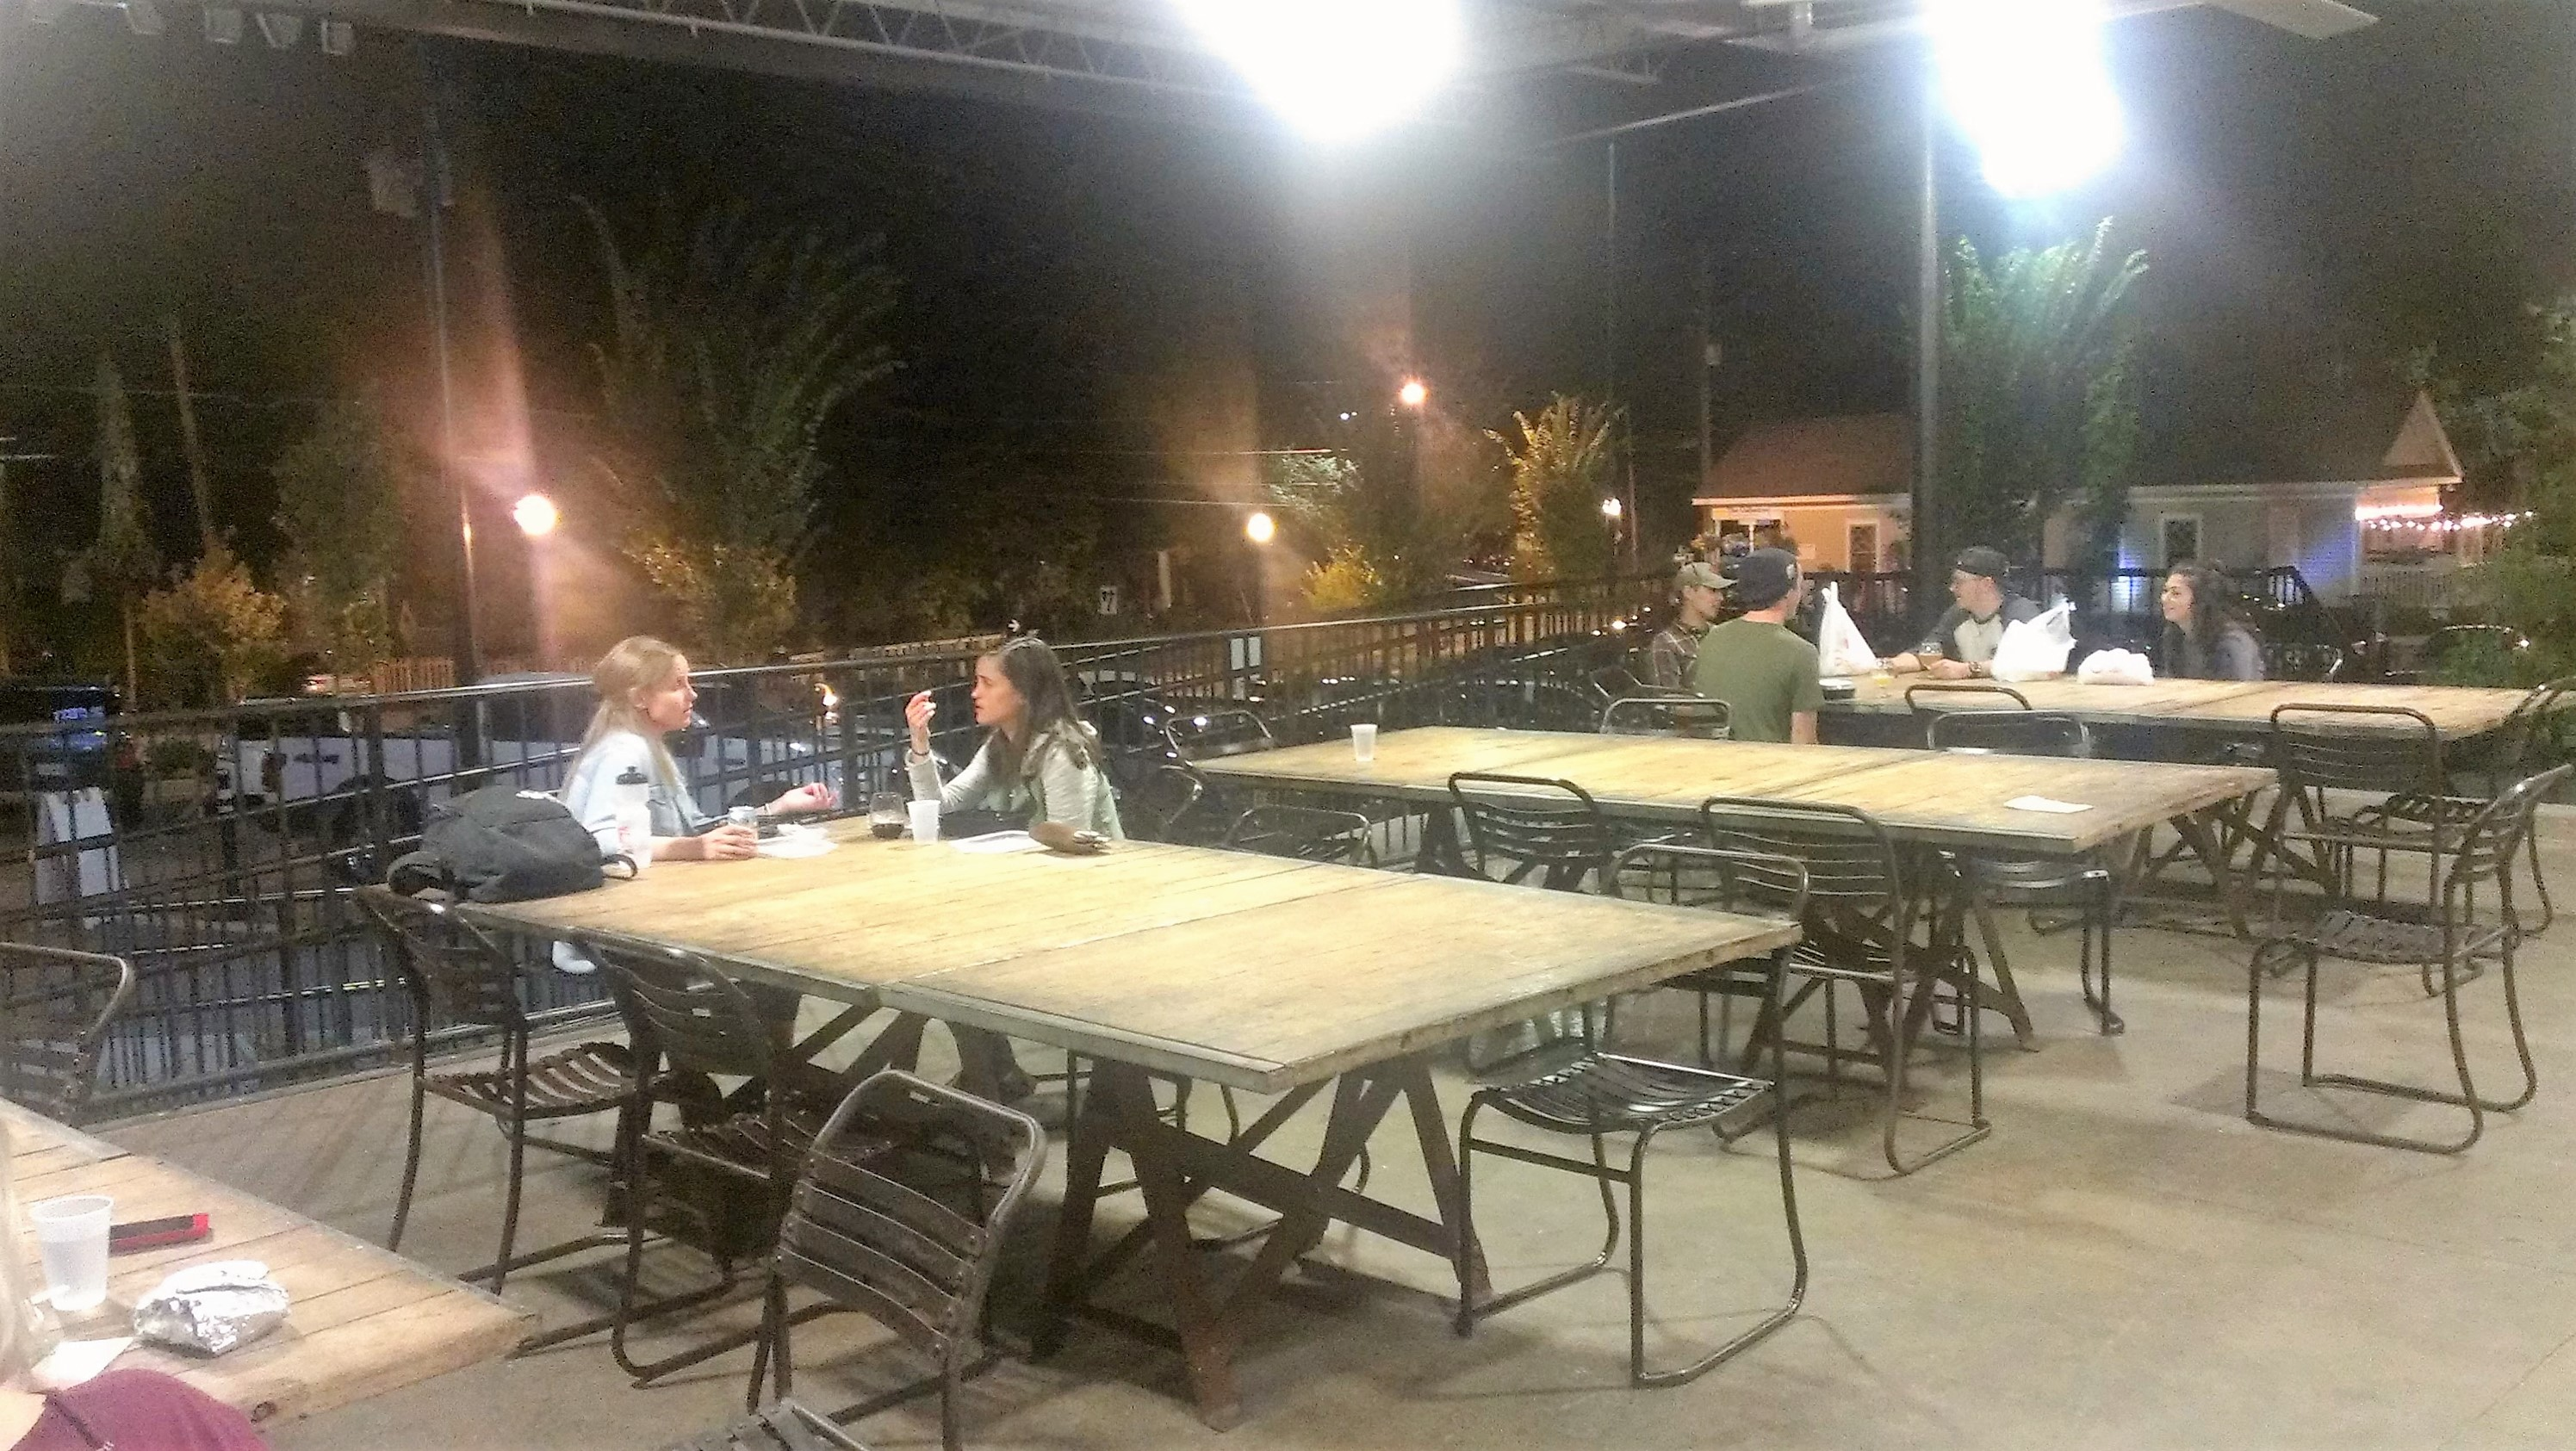 Family Style Seating Located Outside Krog Street Market Encourages Socialization